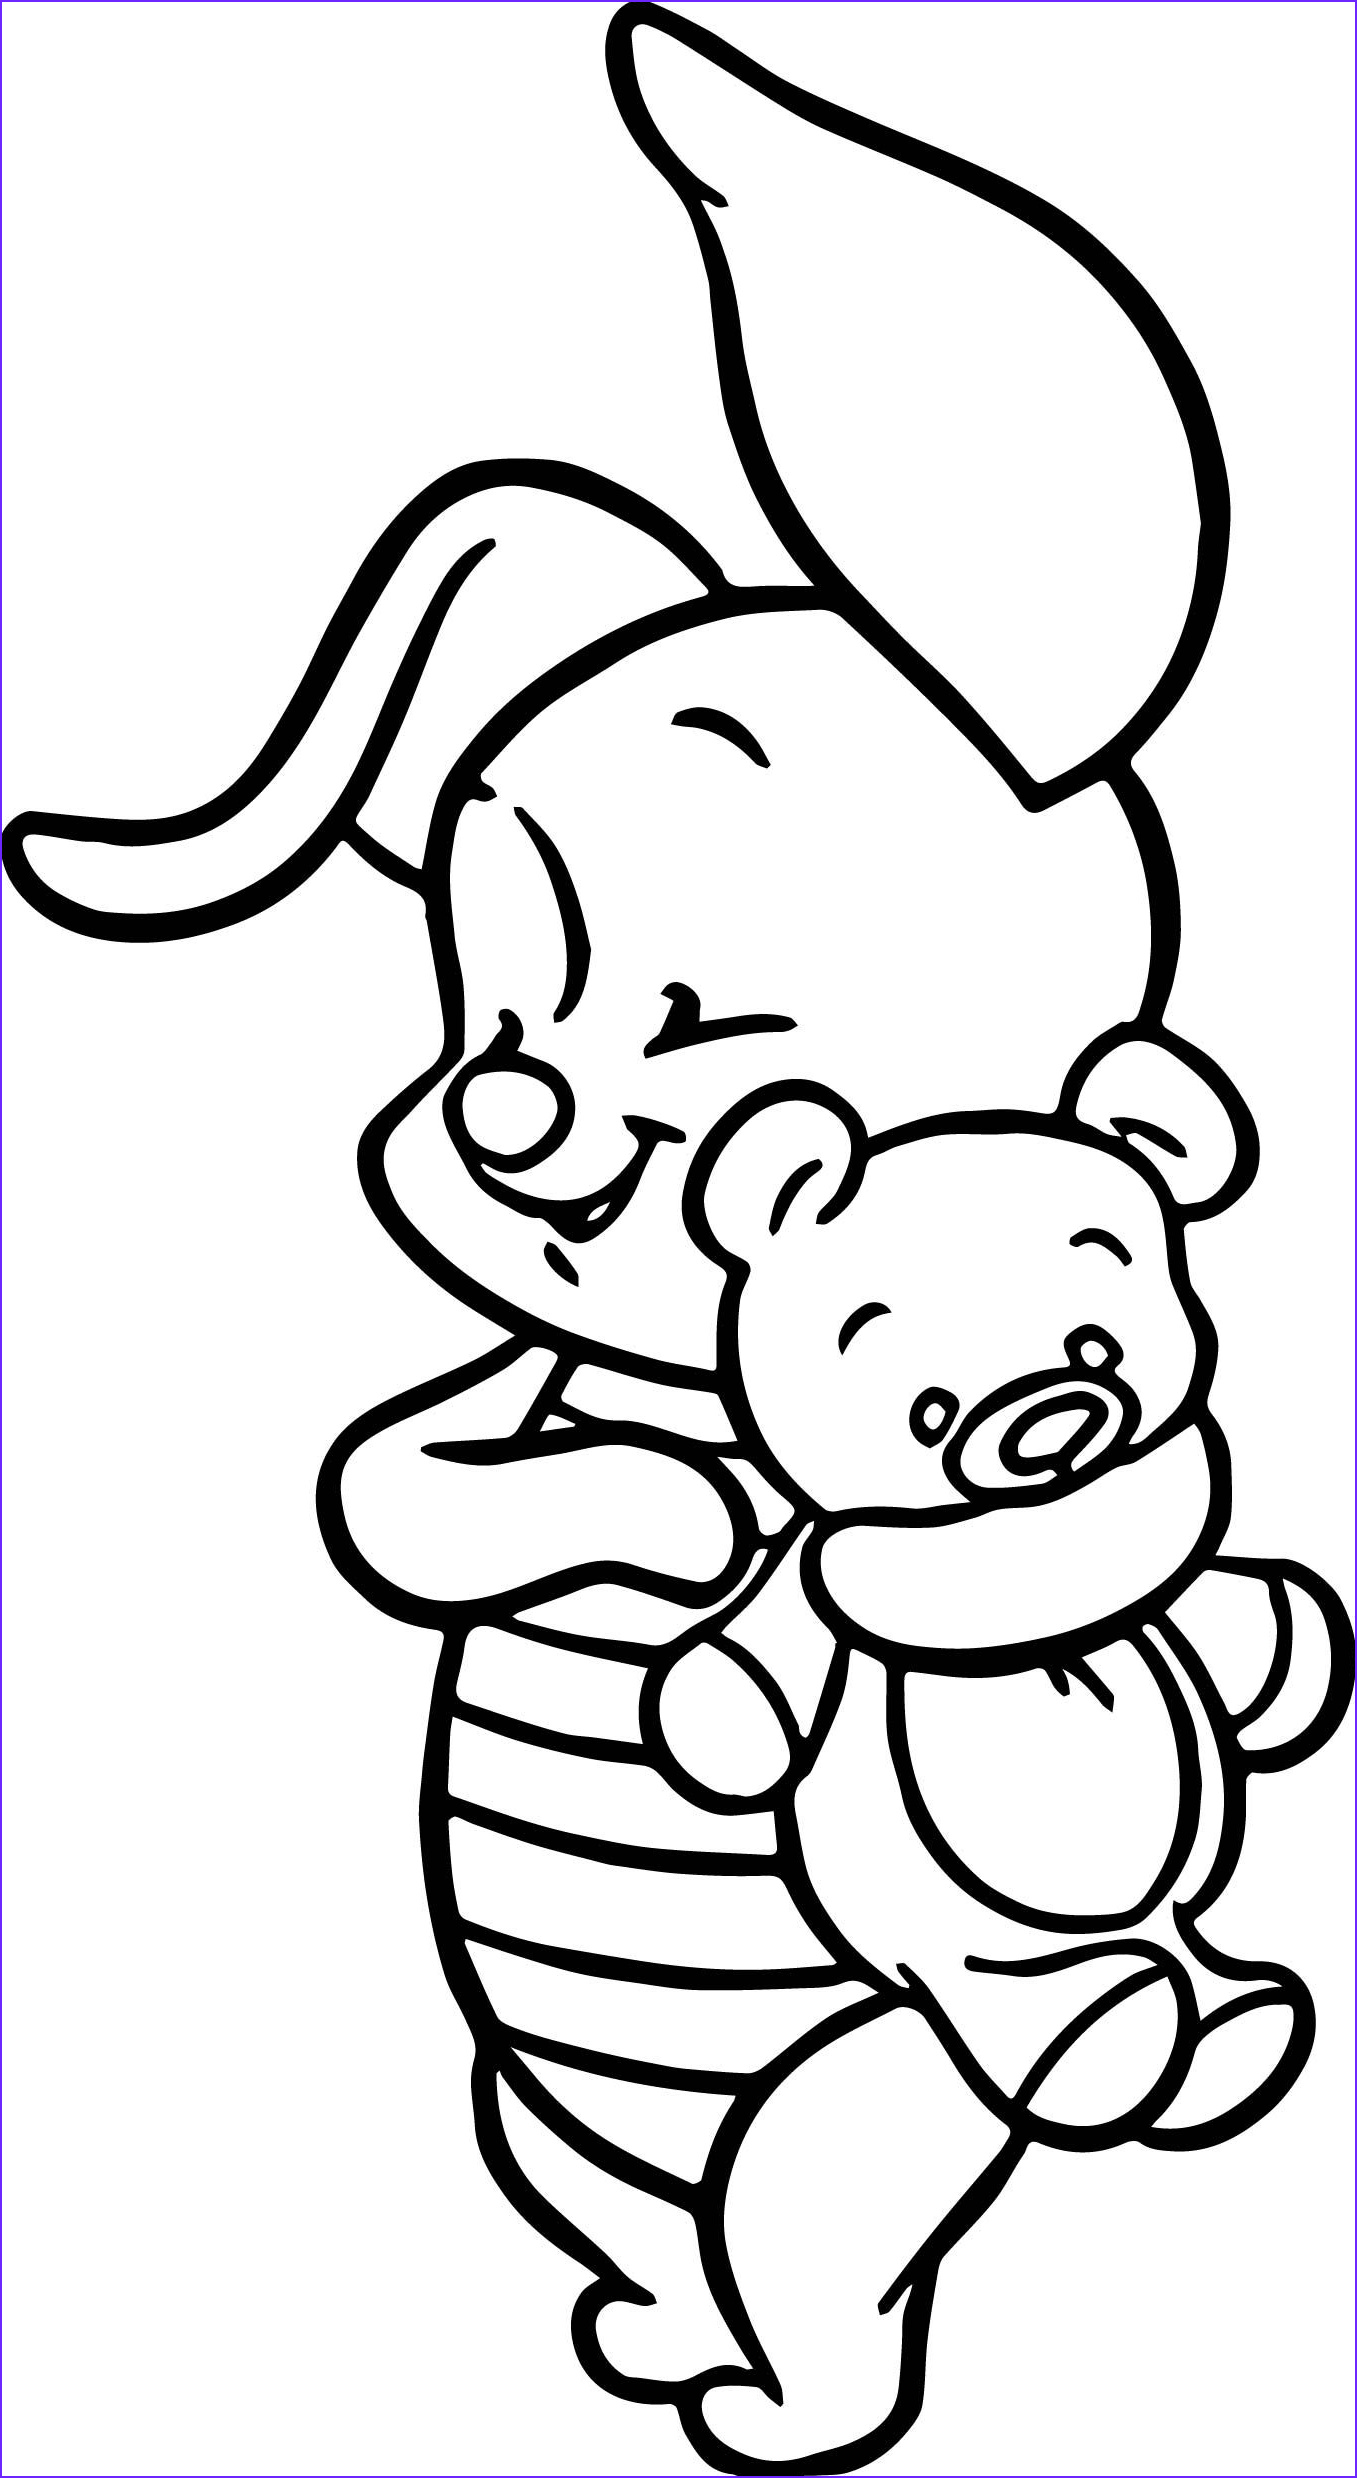 Whinnie the Pooh Coloring Beautiful Photography Winnie the Pooh Coloring Pages Disney